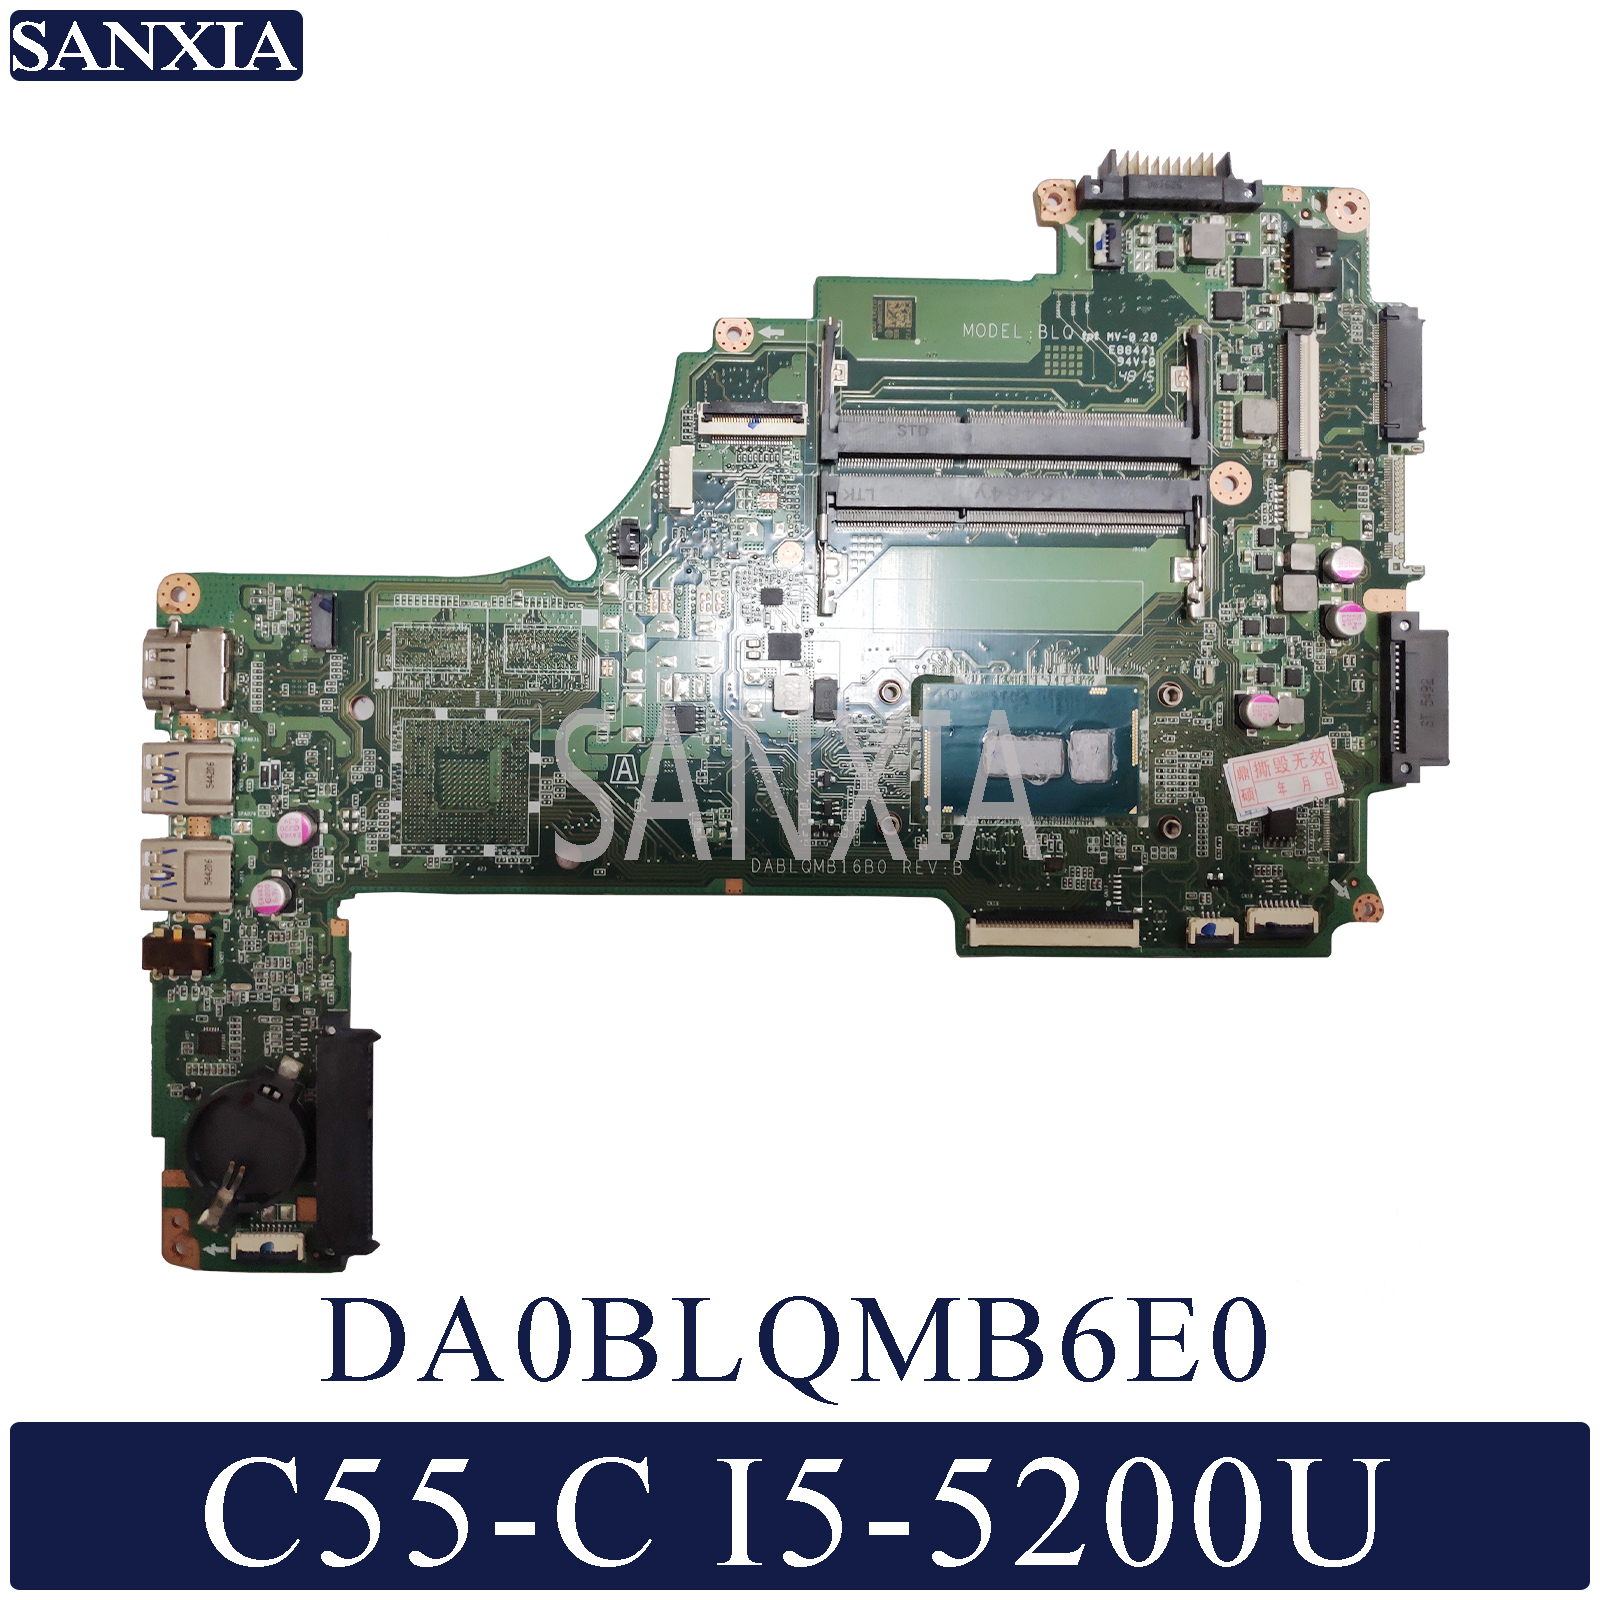 KEFU DA0BLQMB6E0 Laptop <font><b>motherboard</b></font> for <font><b>Toshiba</b></font> <font><b>Satellite</b></font> <font><b>C55</b></font>-C original mainboard I5-5200U image